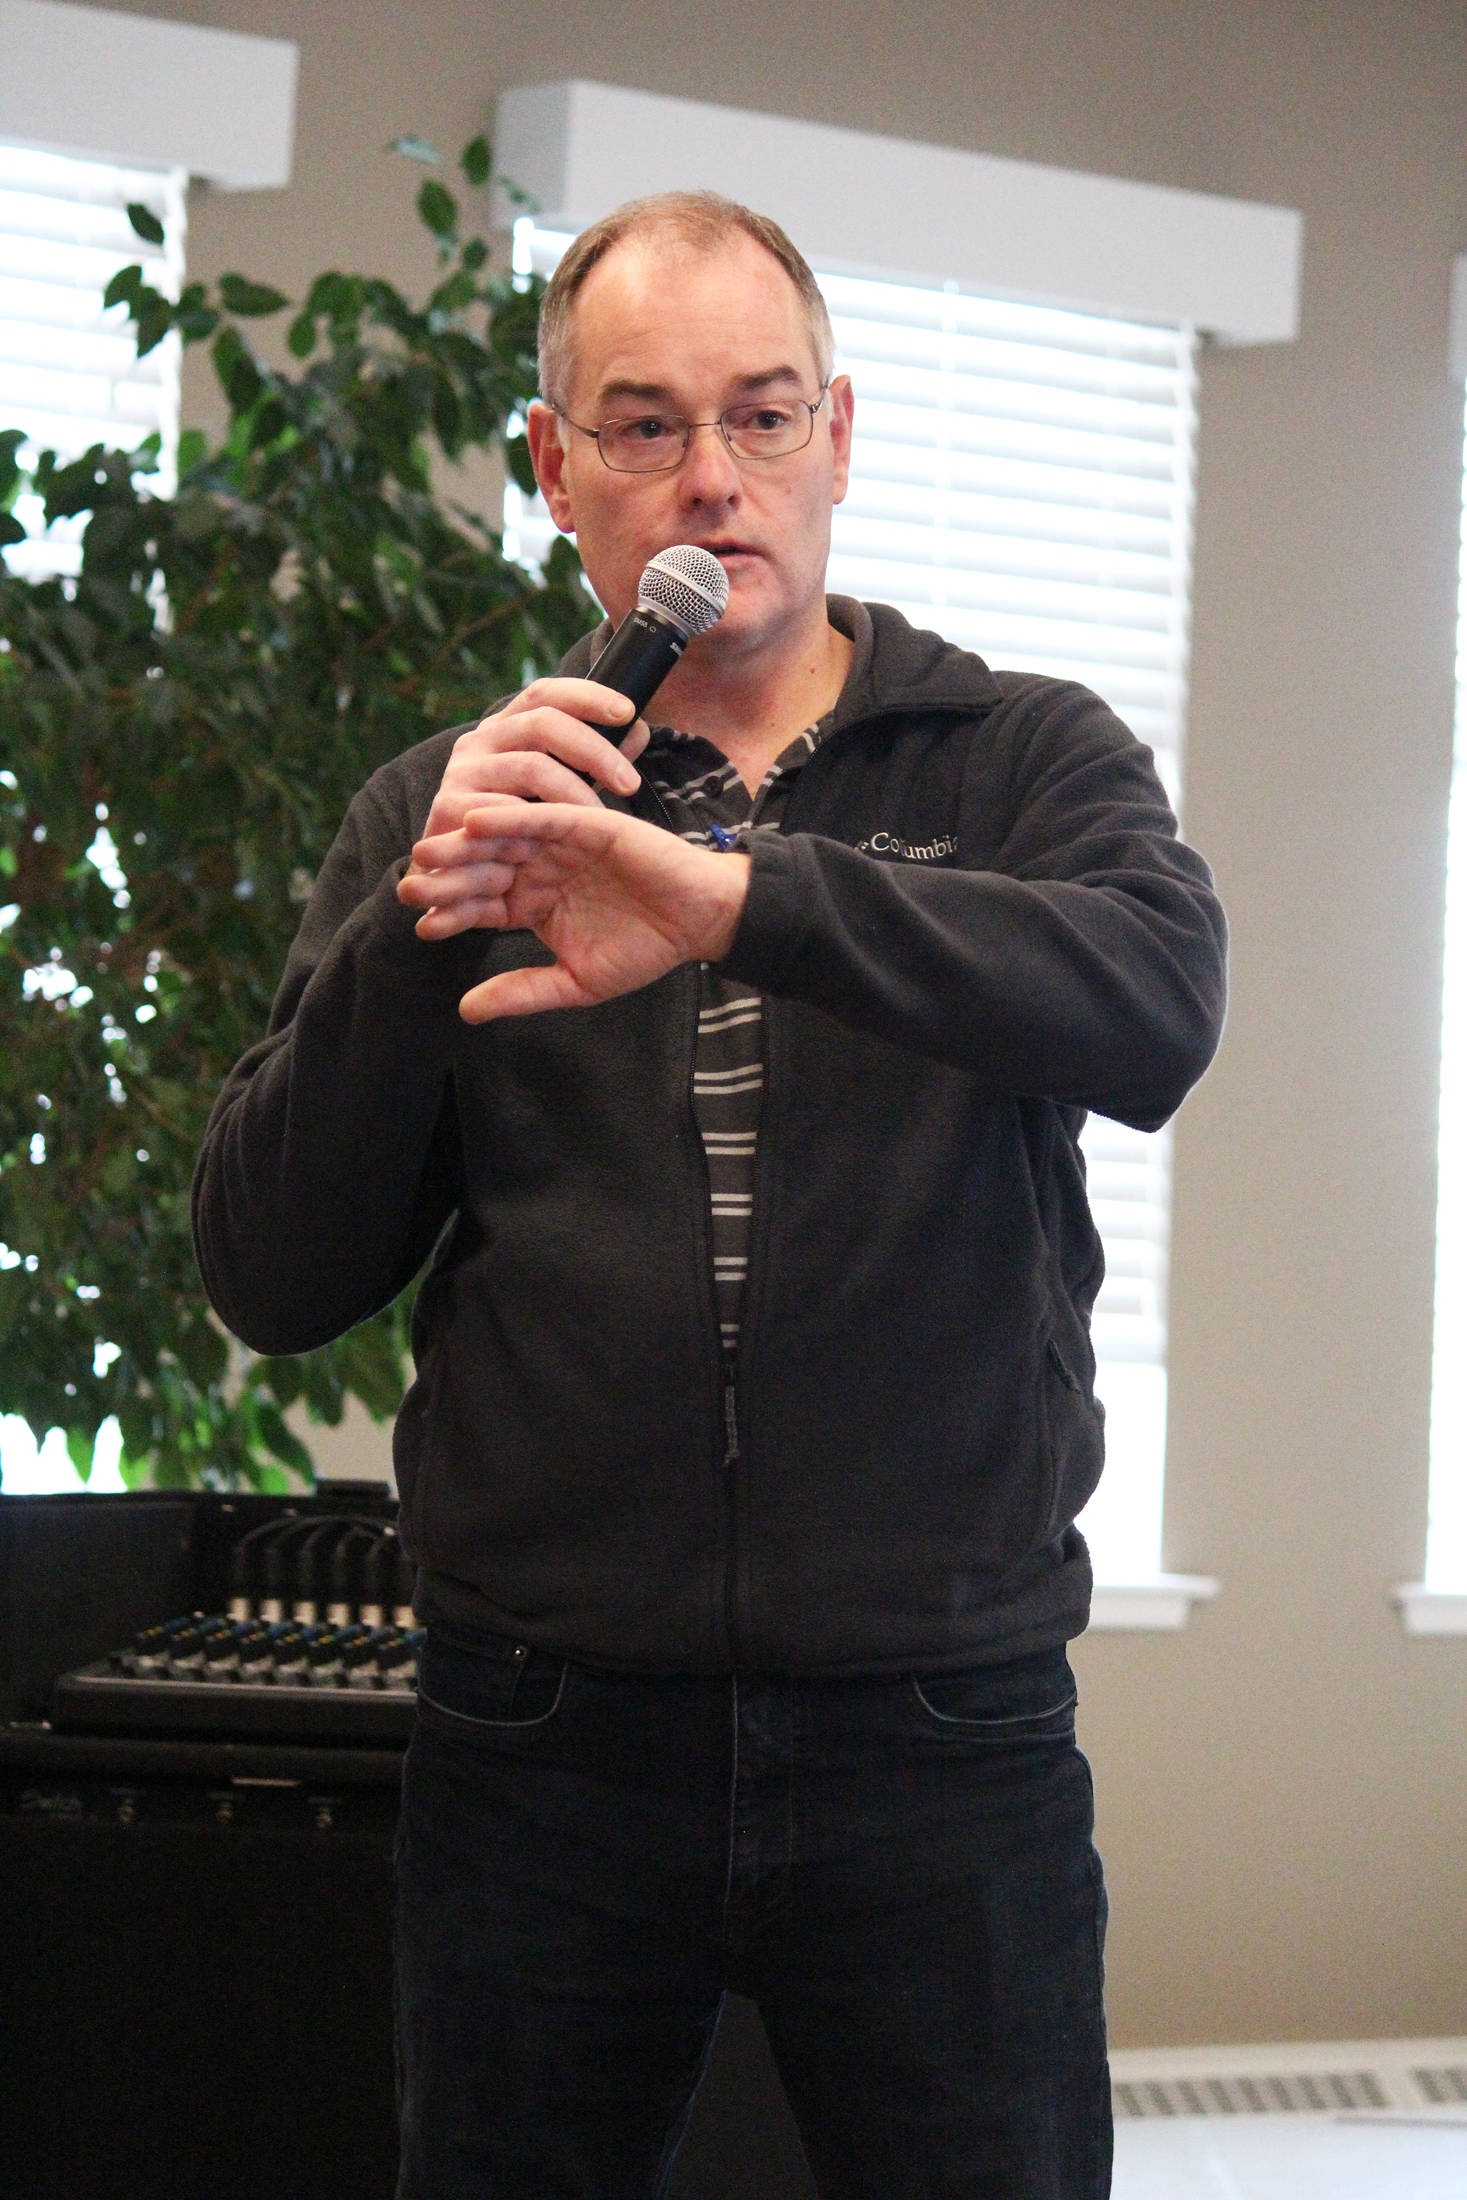 James Fueg, vice president of permitting for the Pebble Limited Partnership, speaks to a crowd of people at a community meeting Tuesday, March 19, 2019 at Land's End Resort in Homer, Alaska. (Photo by Megan Pacer/Homer News)